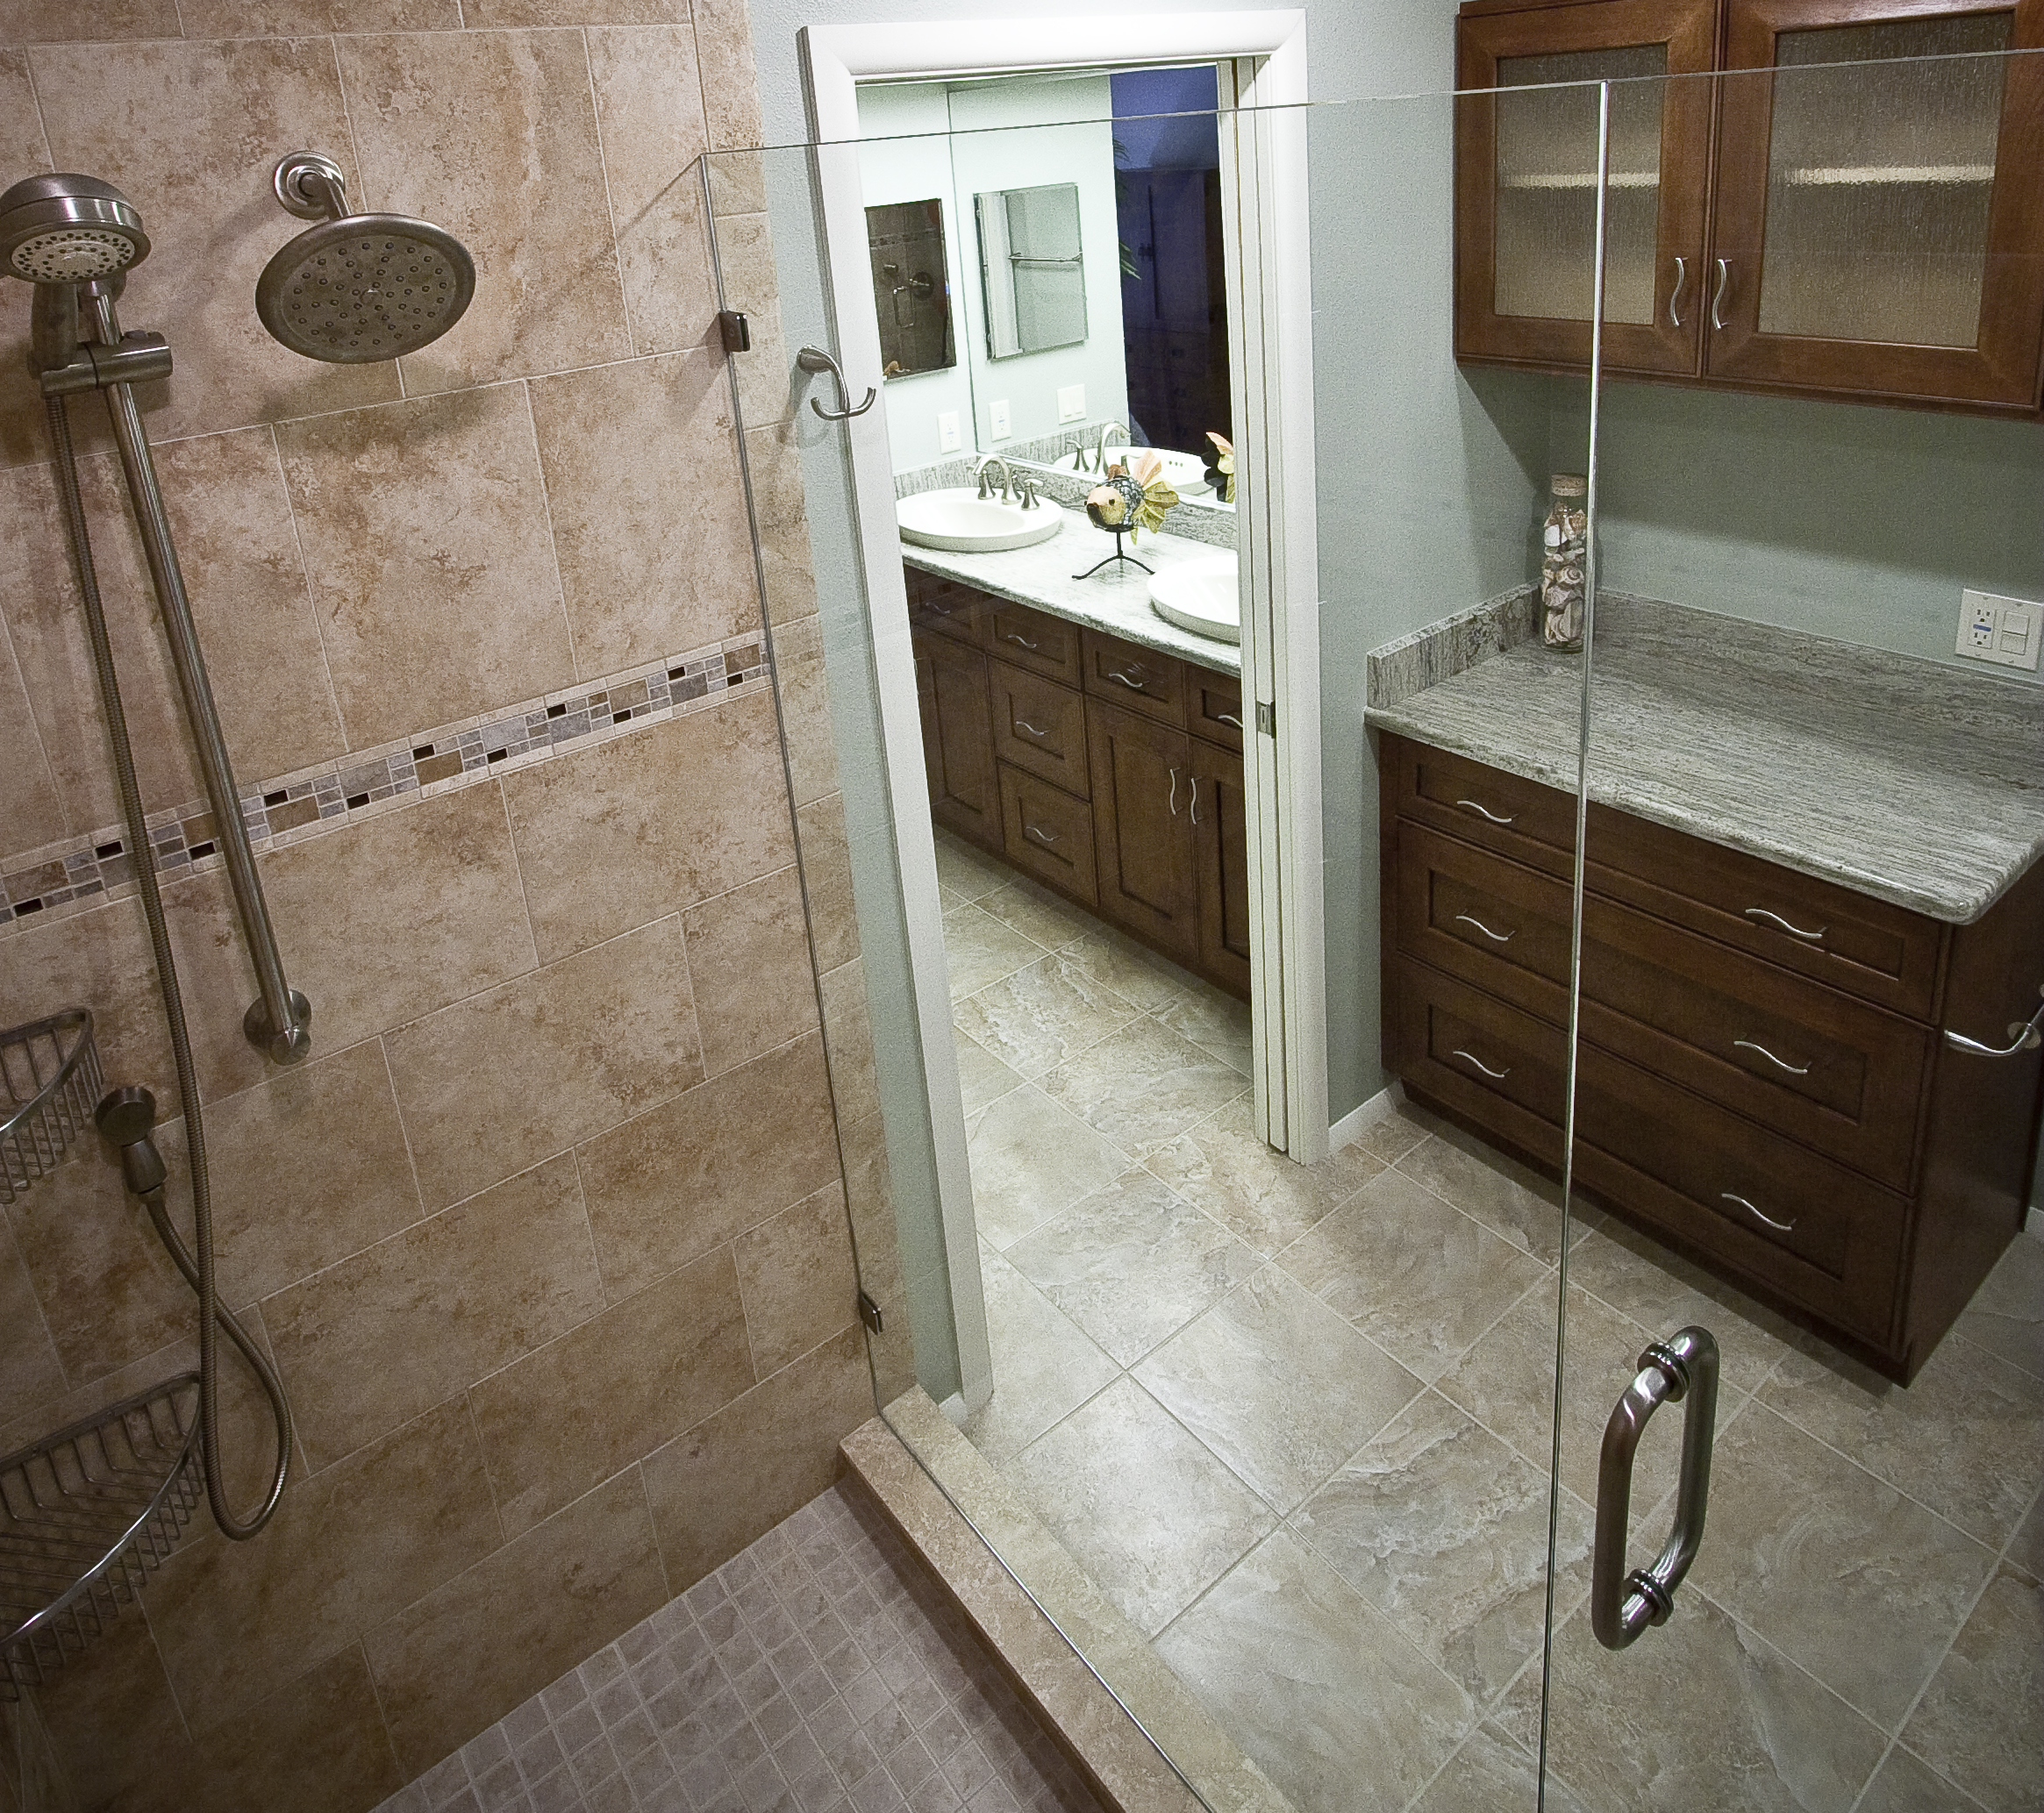 Tampa Bay Bathroom Remodeling: New Charter Bay Home Builders Testimonial...